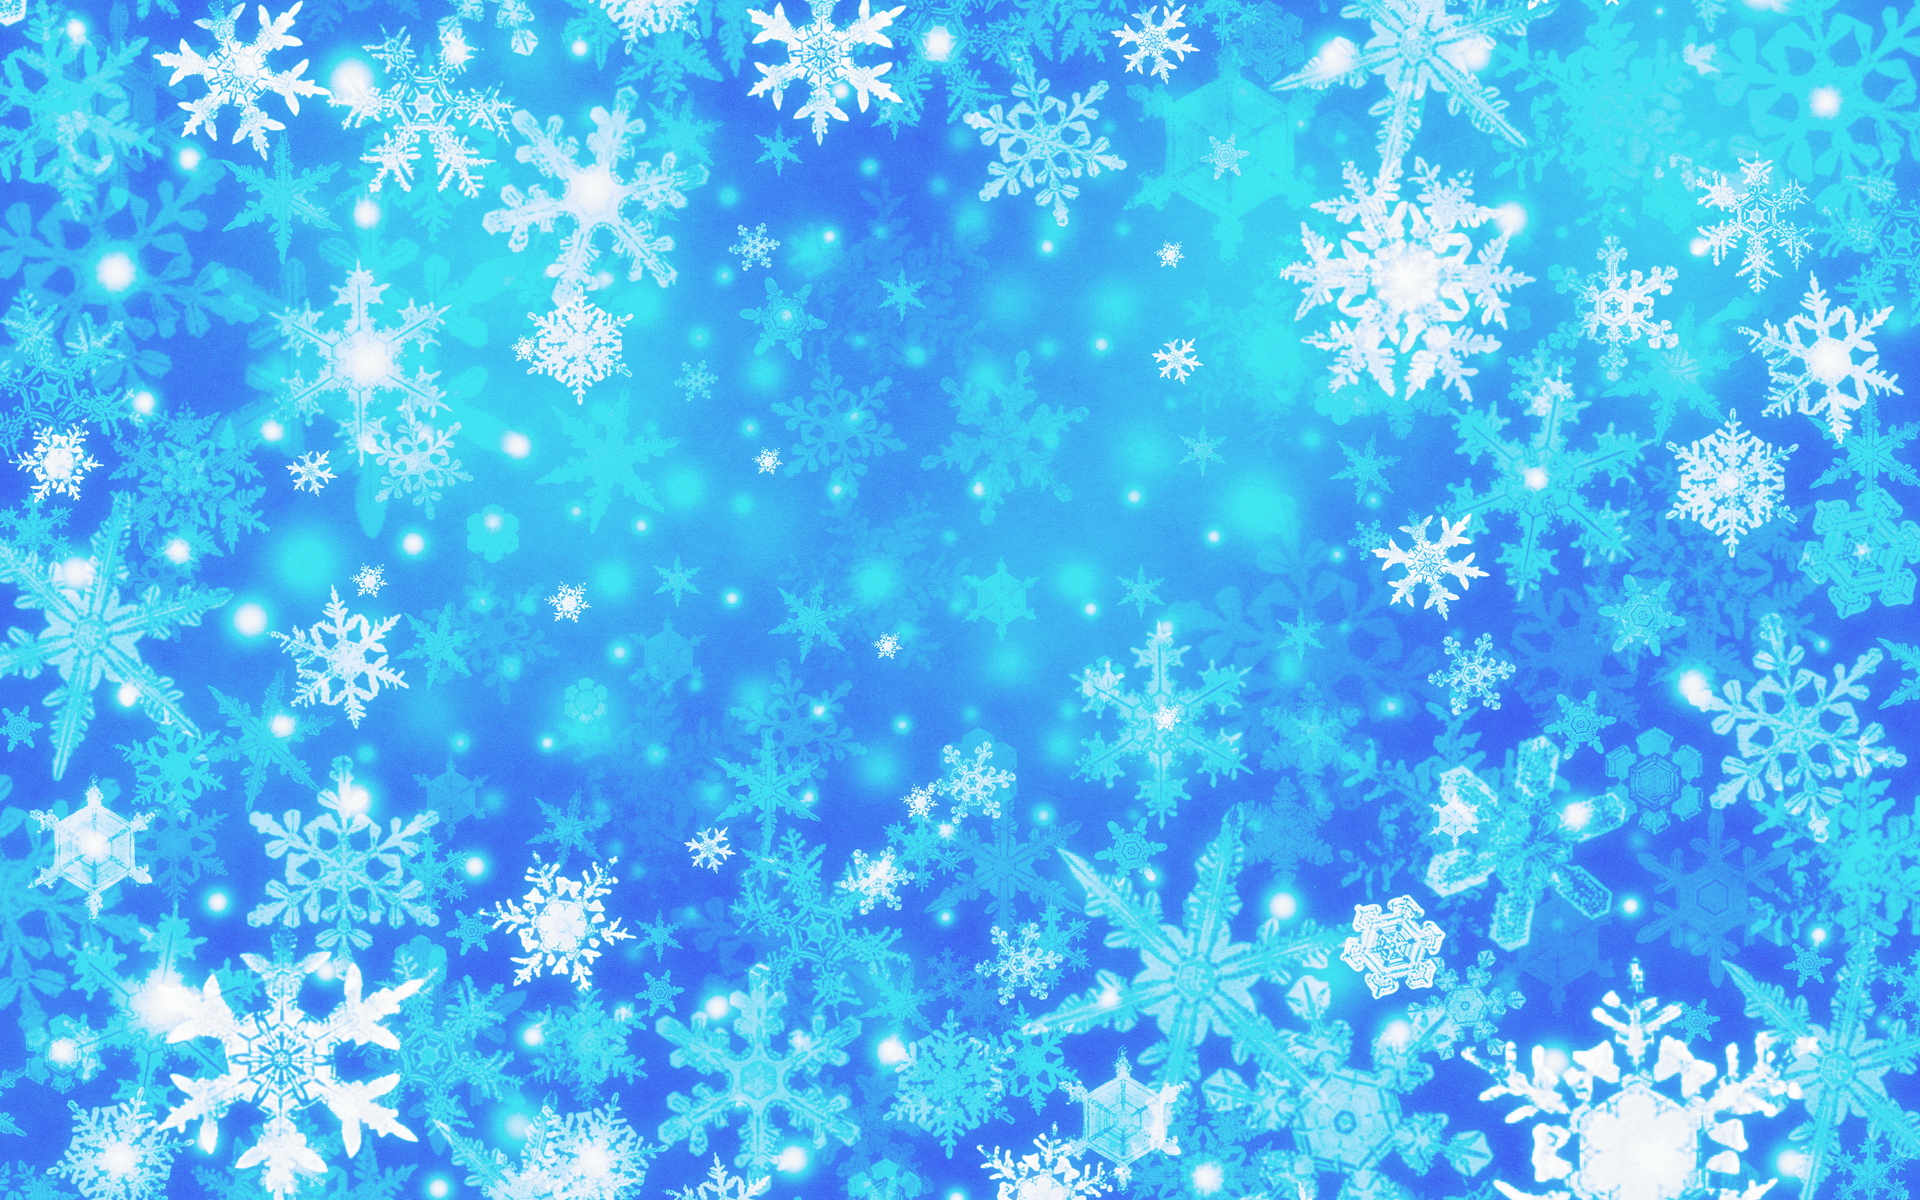 Blue Snow Background - Deerfield Public Library